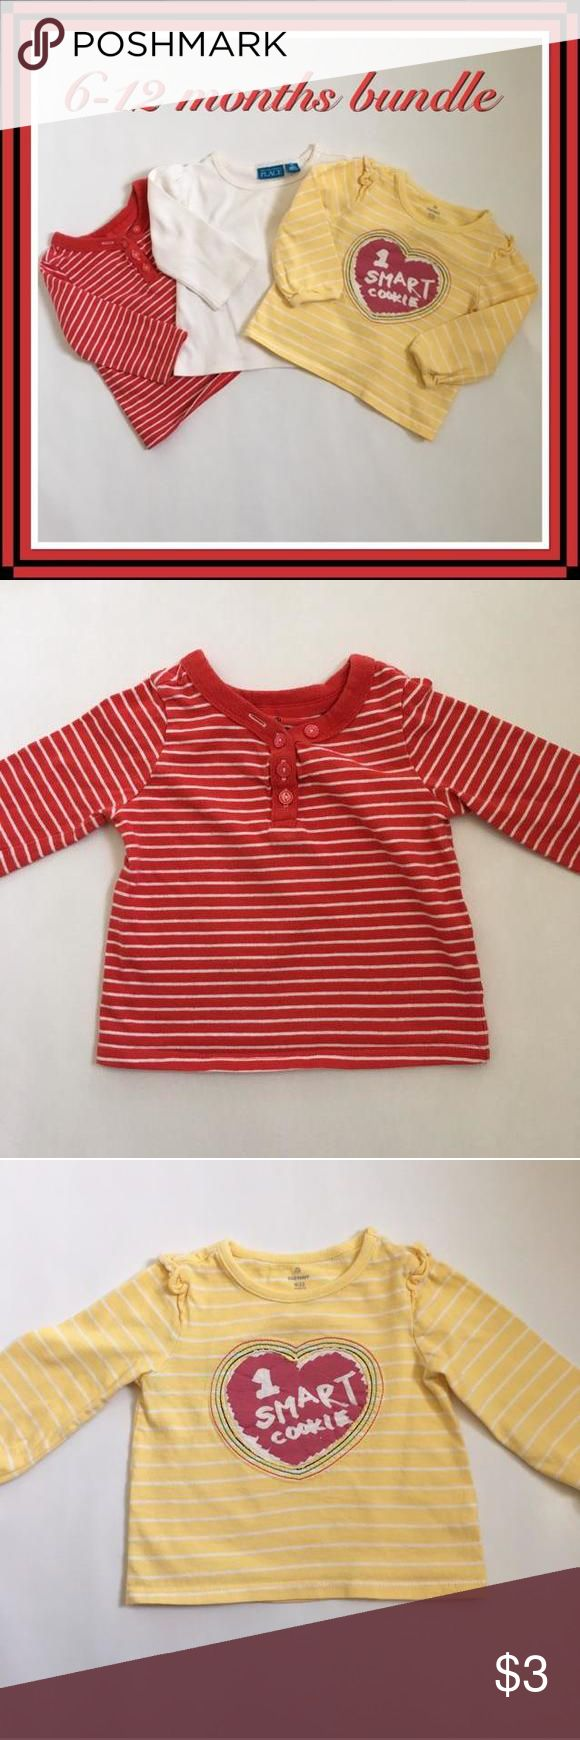 3 long sleeves shirt bundle 6-12 m 3 long sleeves shirt bundle for 6-12 months old. All used a couple of times, in excellent condition, no stains or wear. All 100% cotton. Machine wash/dry.   1. Old Navy with 1 smart cookie sign 2. The Children's Place.   3. Old Navy red/white stripes. Old Navy Dresses